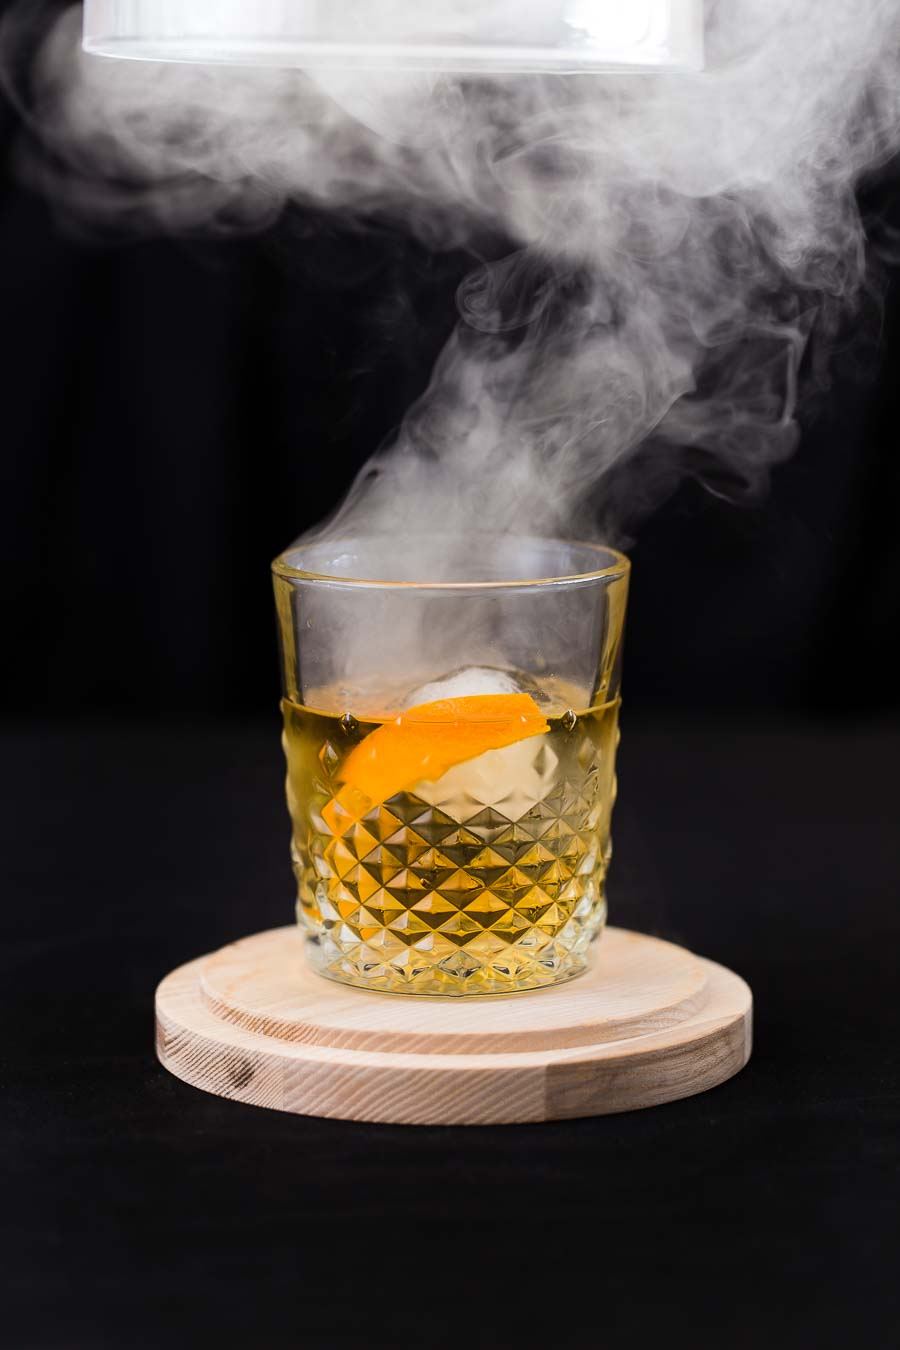 A crystal tumbler containing an amber drink, ice cub and orange wedge sits on a light, wooden base with a smoke plume rising from the glass as glass cover is being lifted from over the top, with a black surround and background